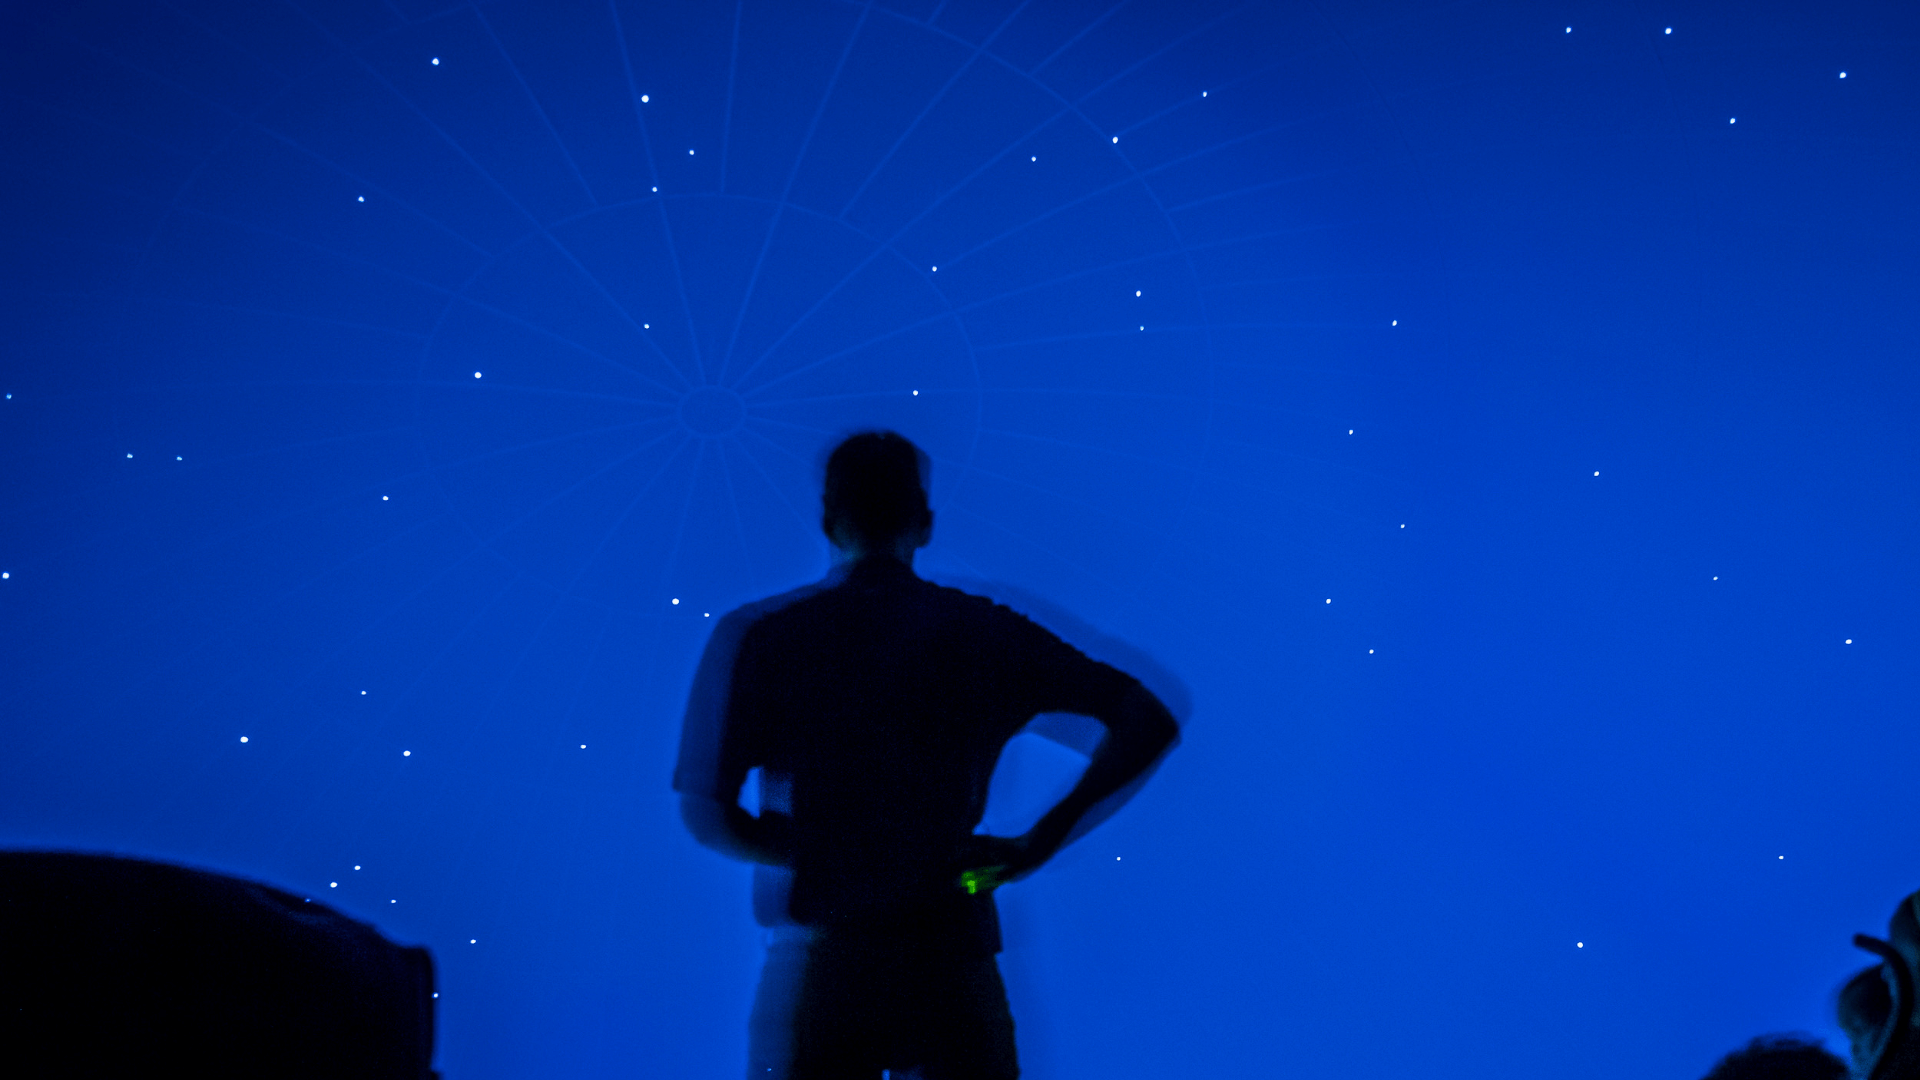 silhouette of a man standing in front of observatory